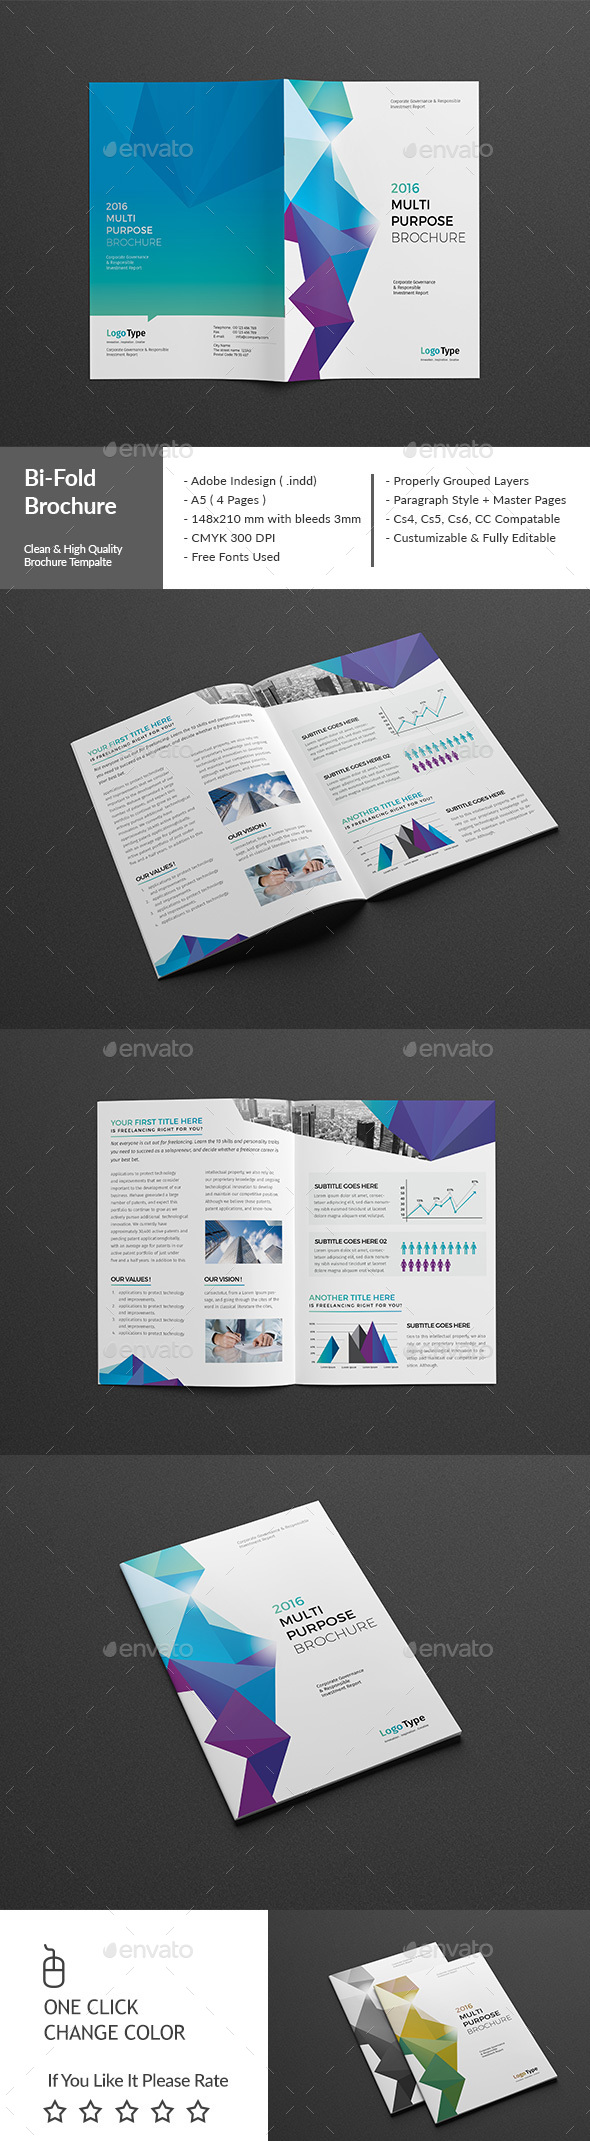 abstract bi fold brochure template indesign indd design download httpgraphicrivernetitemabstract bifold brochure 13747629refksioks - Bi Fold Brochure Template Indesign Free